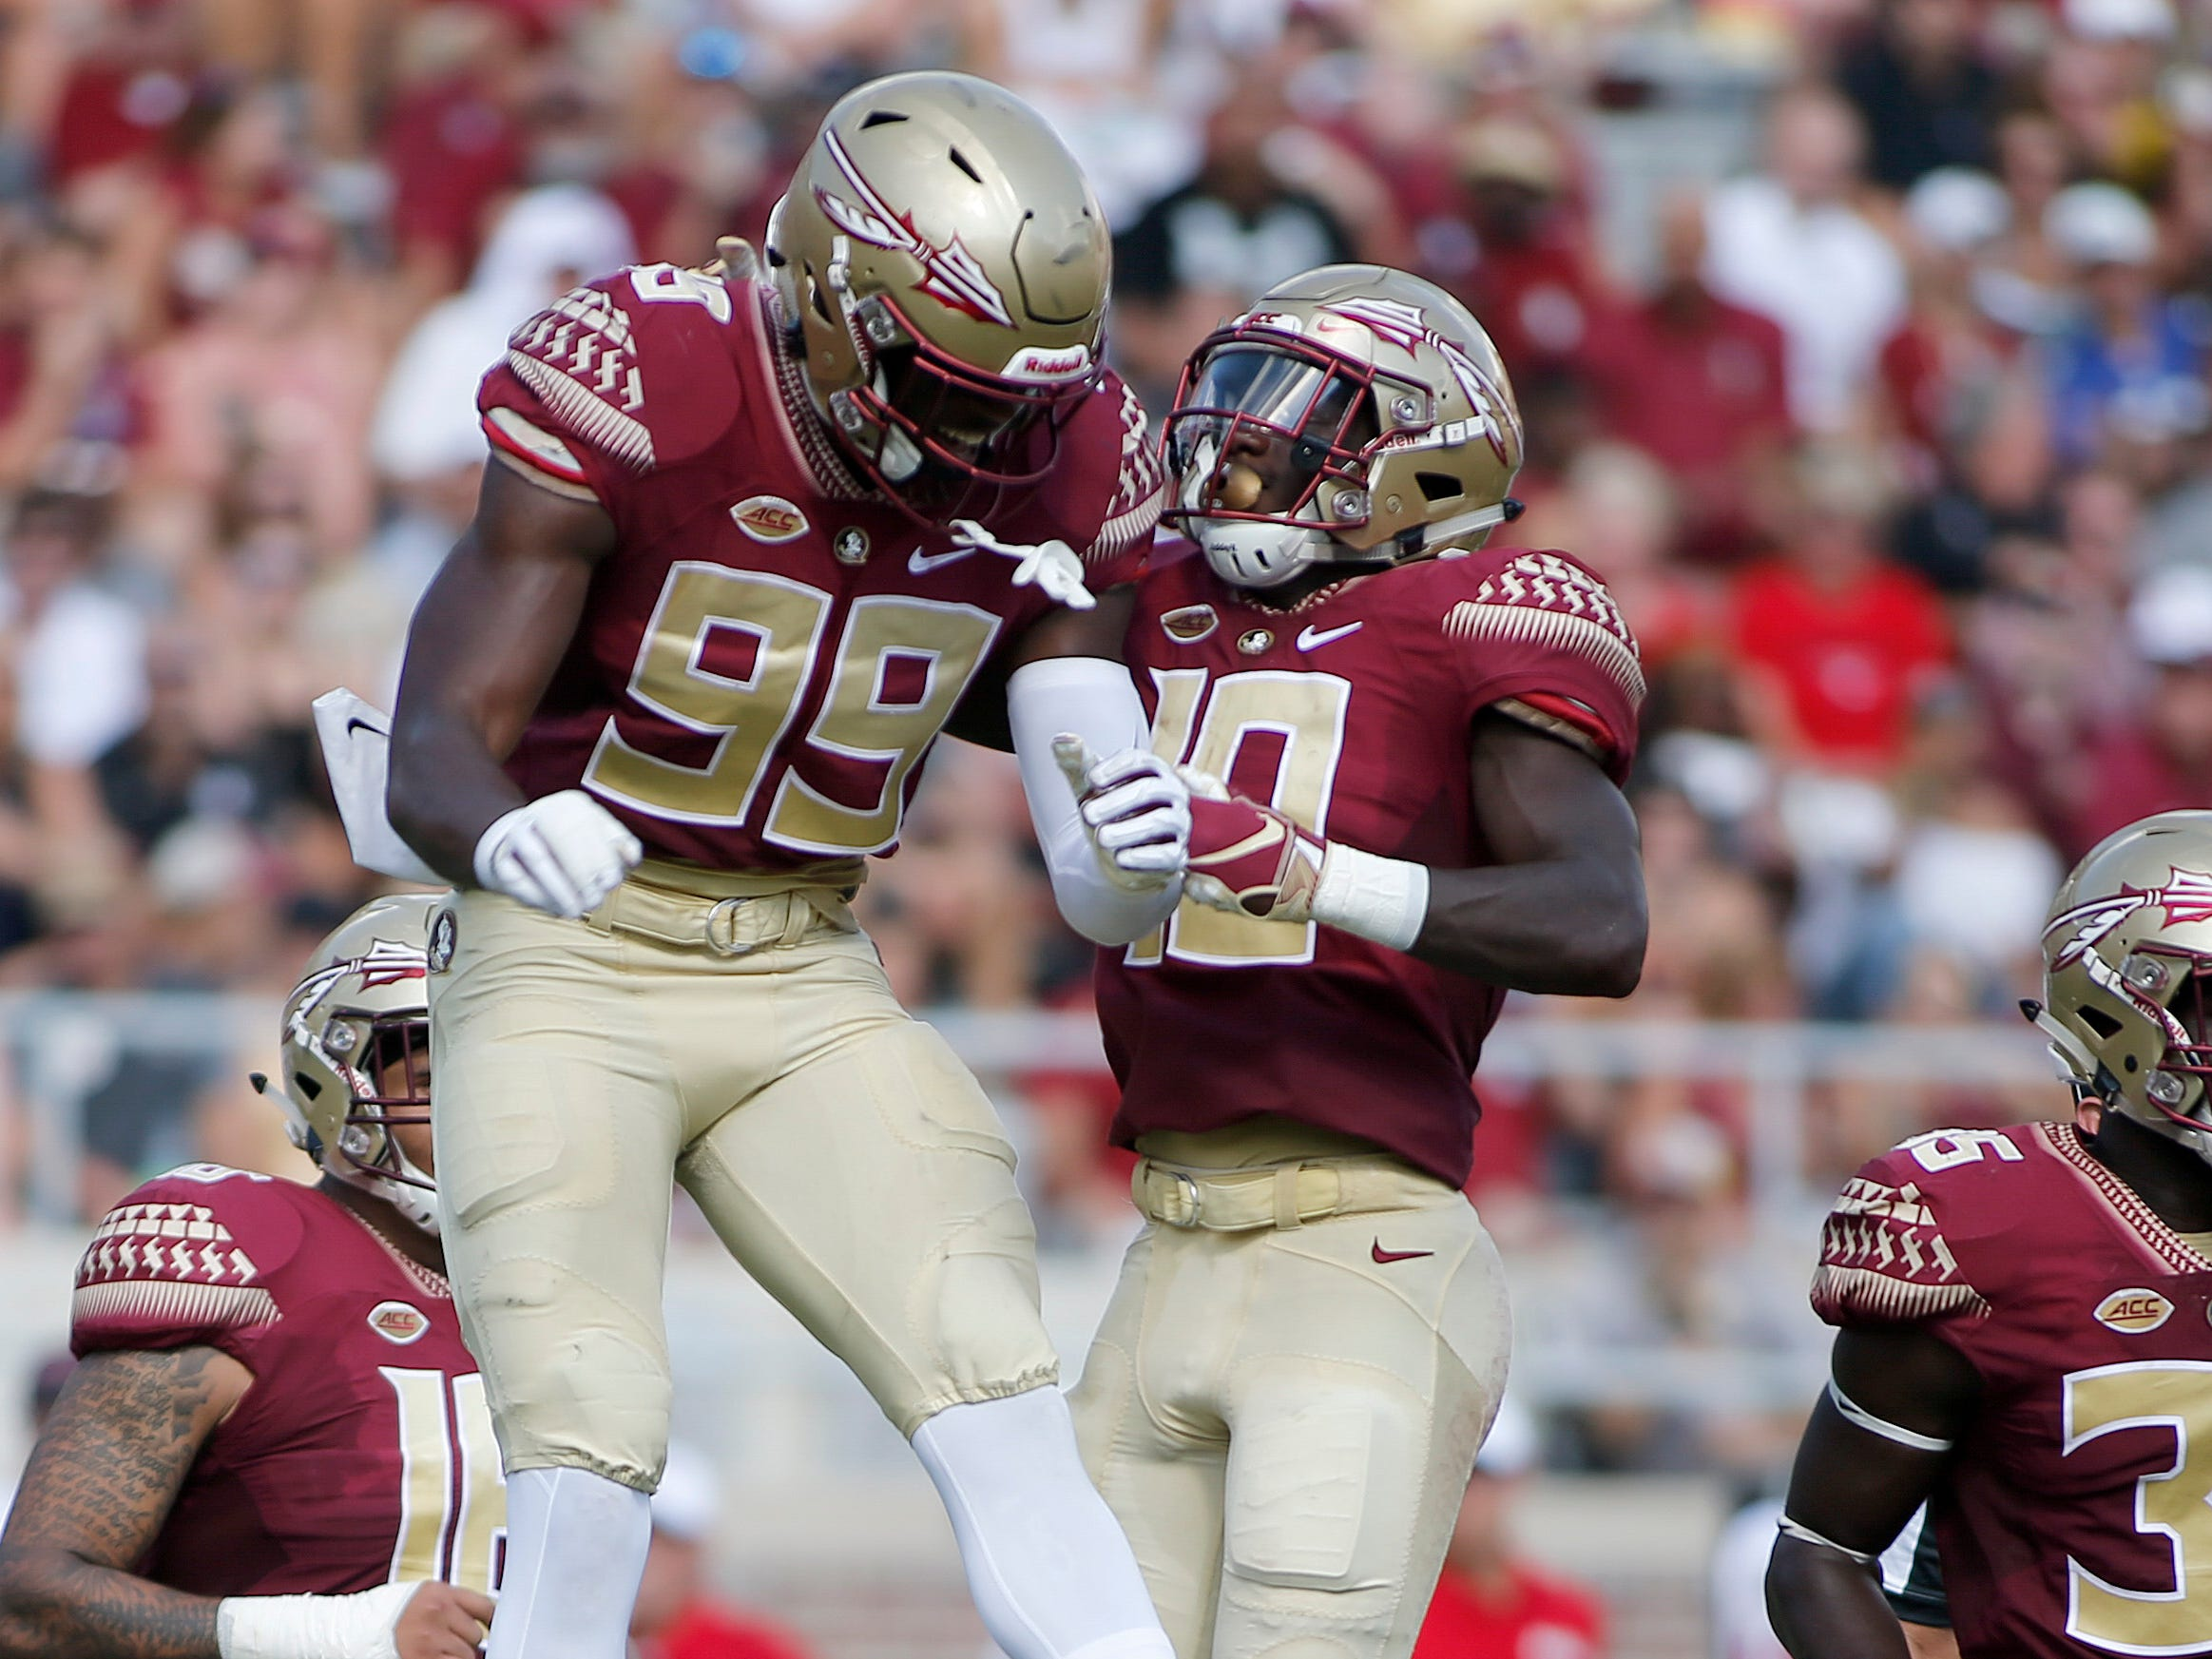 Sep 22, 2018; Tallahassee, FL, USA; Florida State Seminoles defensive end Brian Burns (99) and defensive back Calvin Brewton (10) celebrate during the second quarter of play at Doak Campbell Stadium.